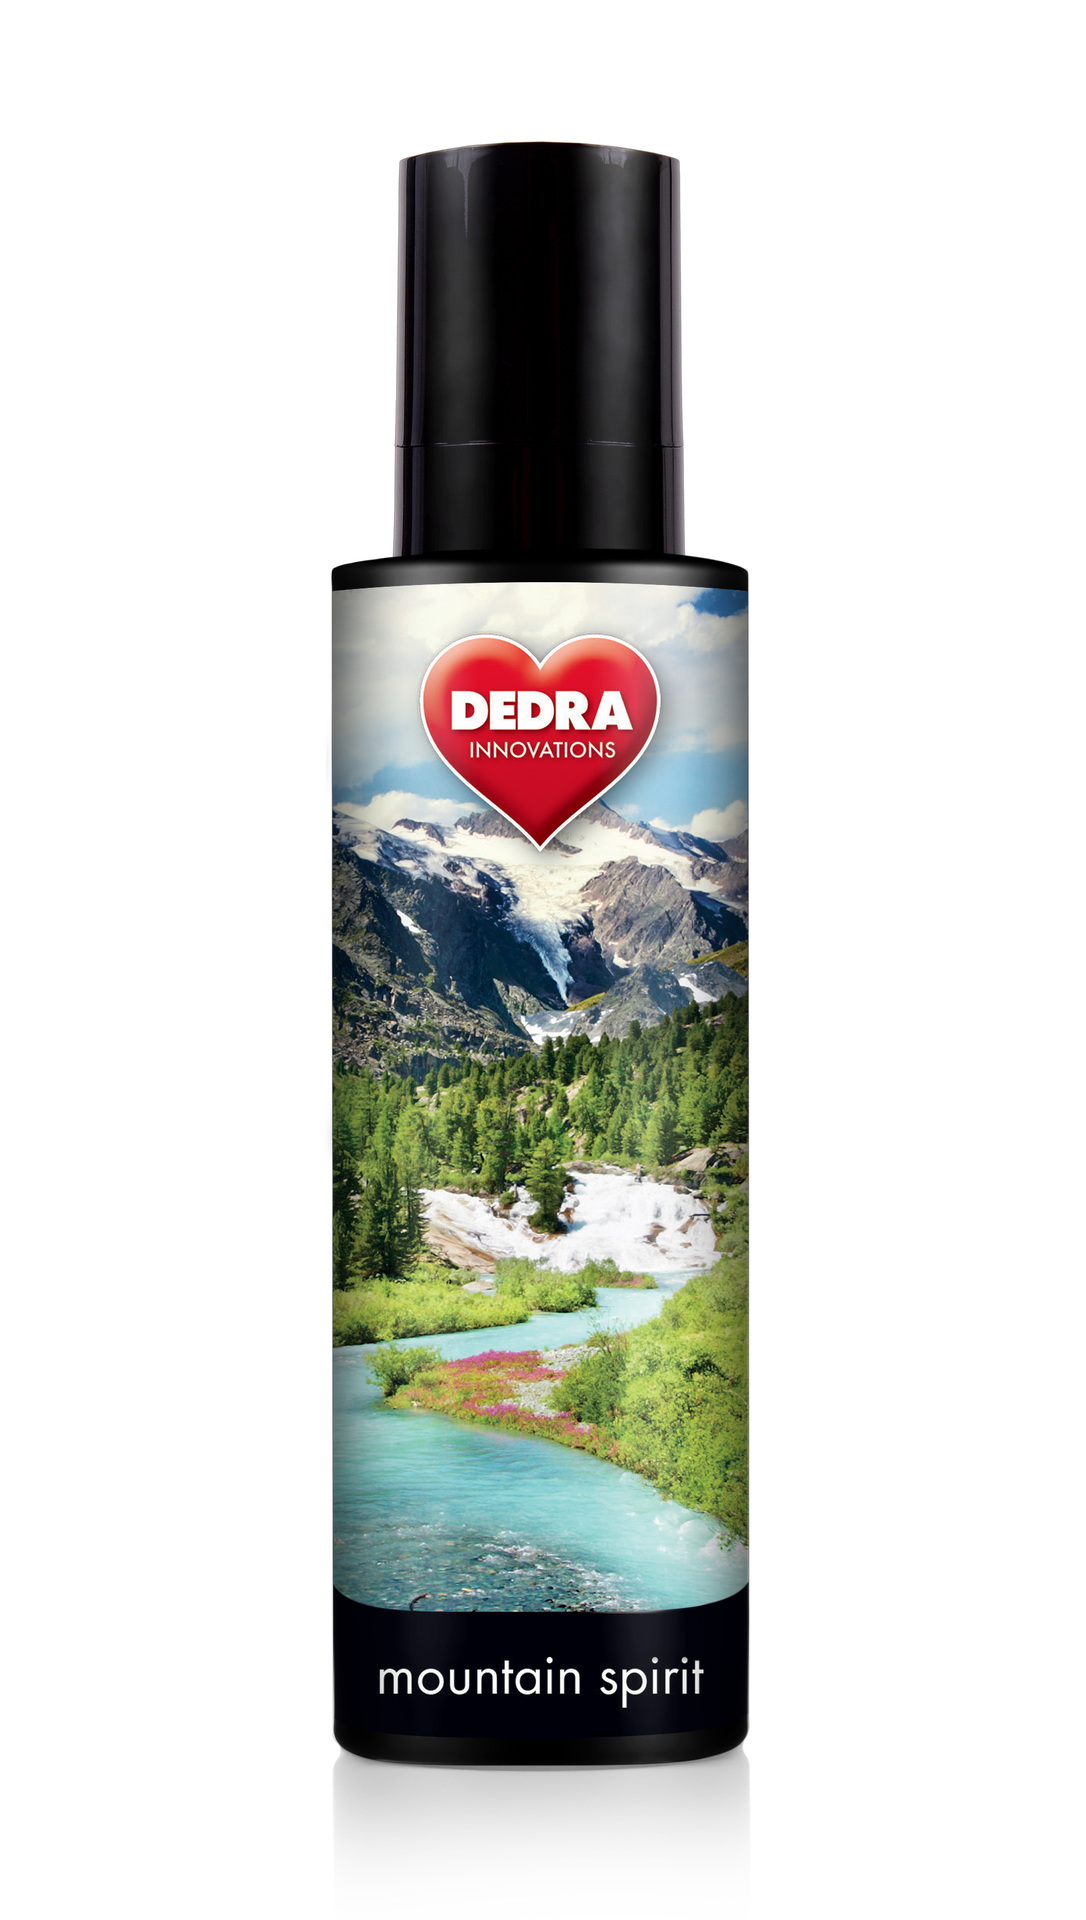 HP0379-PARFUM air & textiles spray mountain spirit osviežovač vzduchu